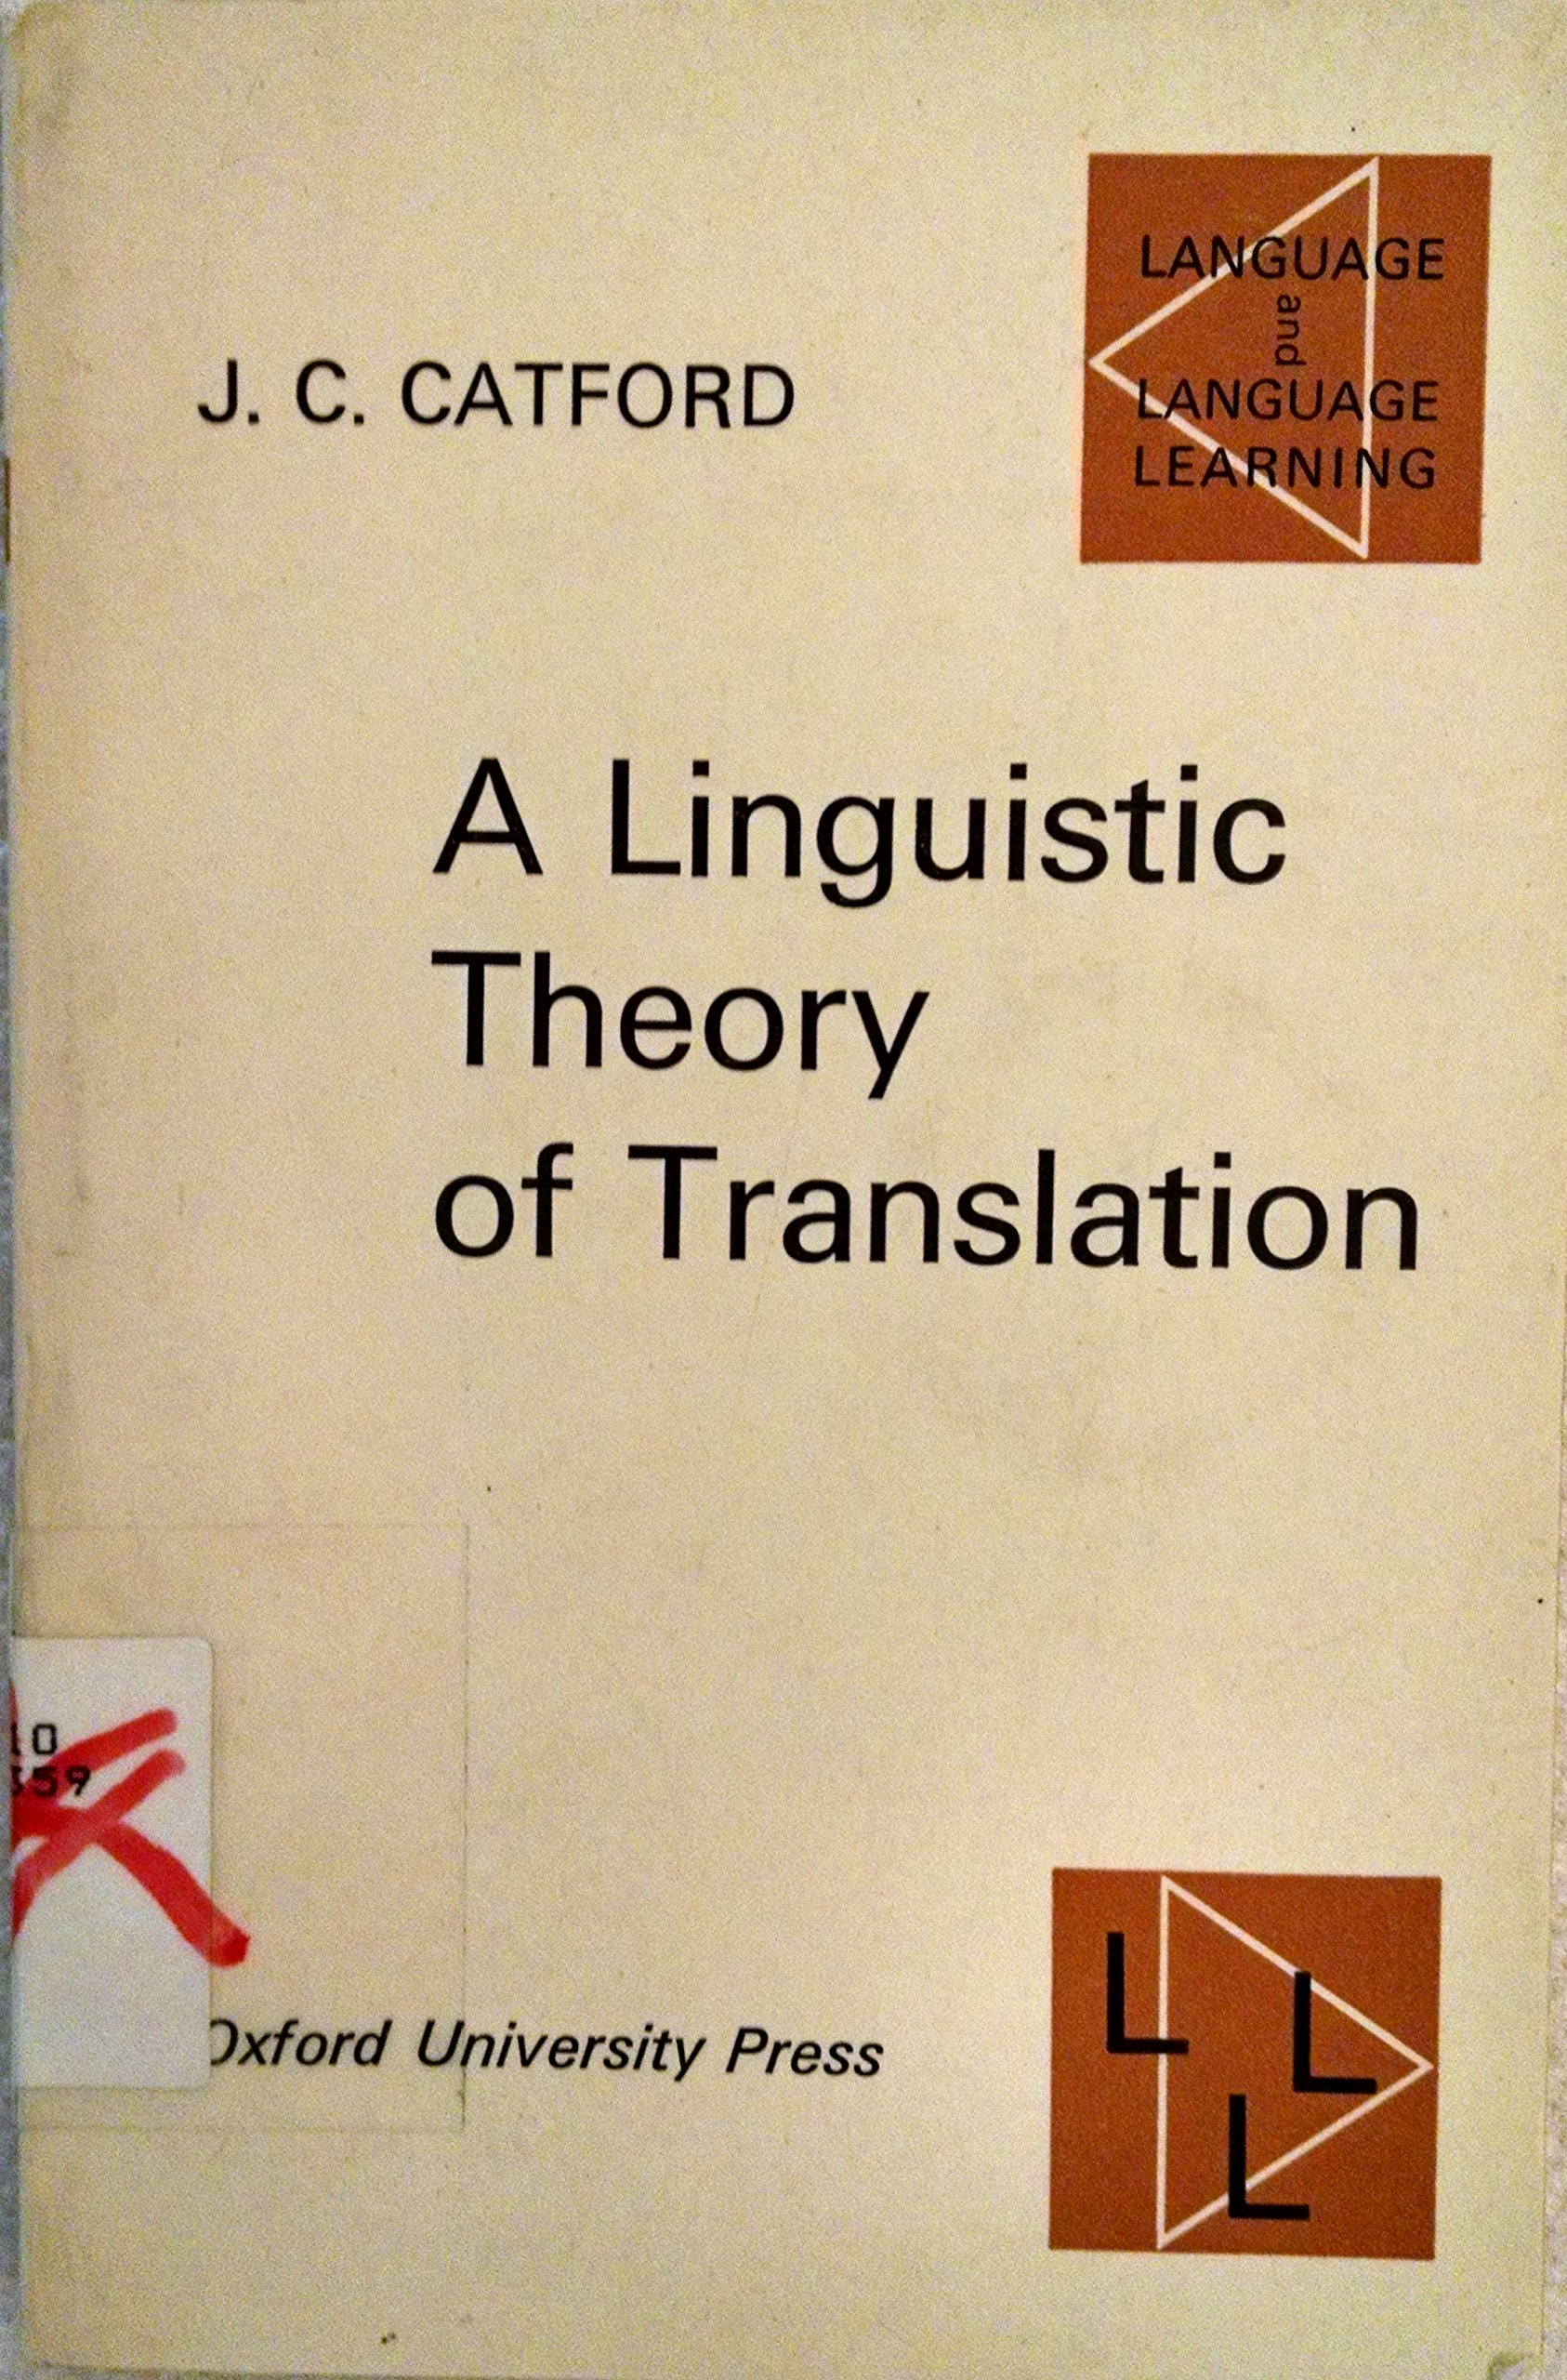 a linguistic theory of translation an essay in applied a linguistic theory of translation an essay in applied linguistics catford j c 9780194370189 com books